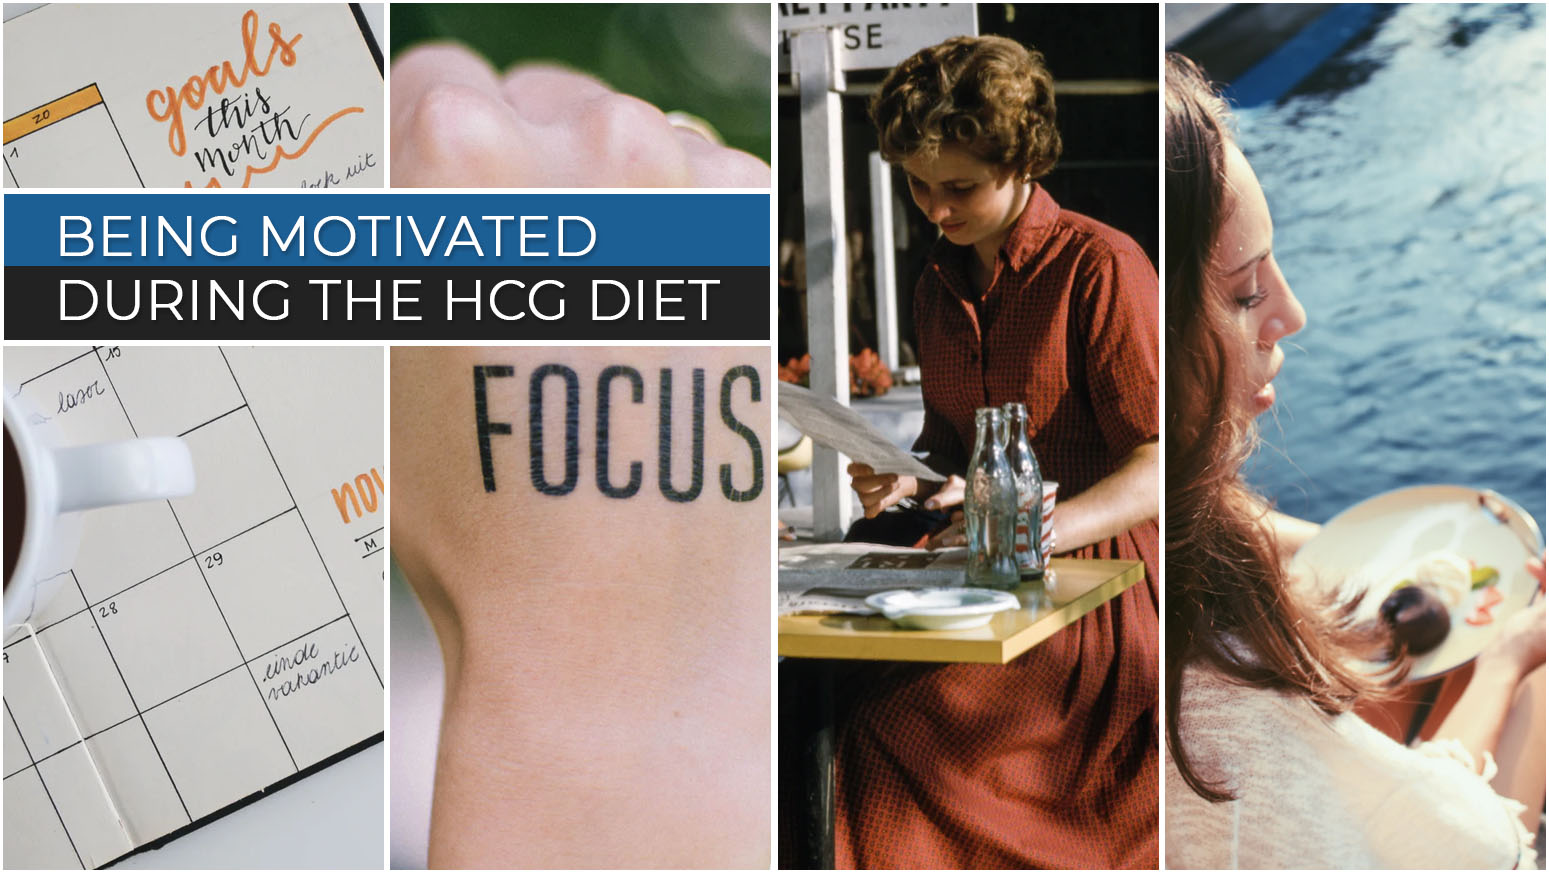 BEING MOTIVATED DURING THE HCG DIET